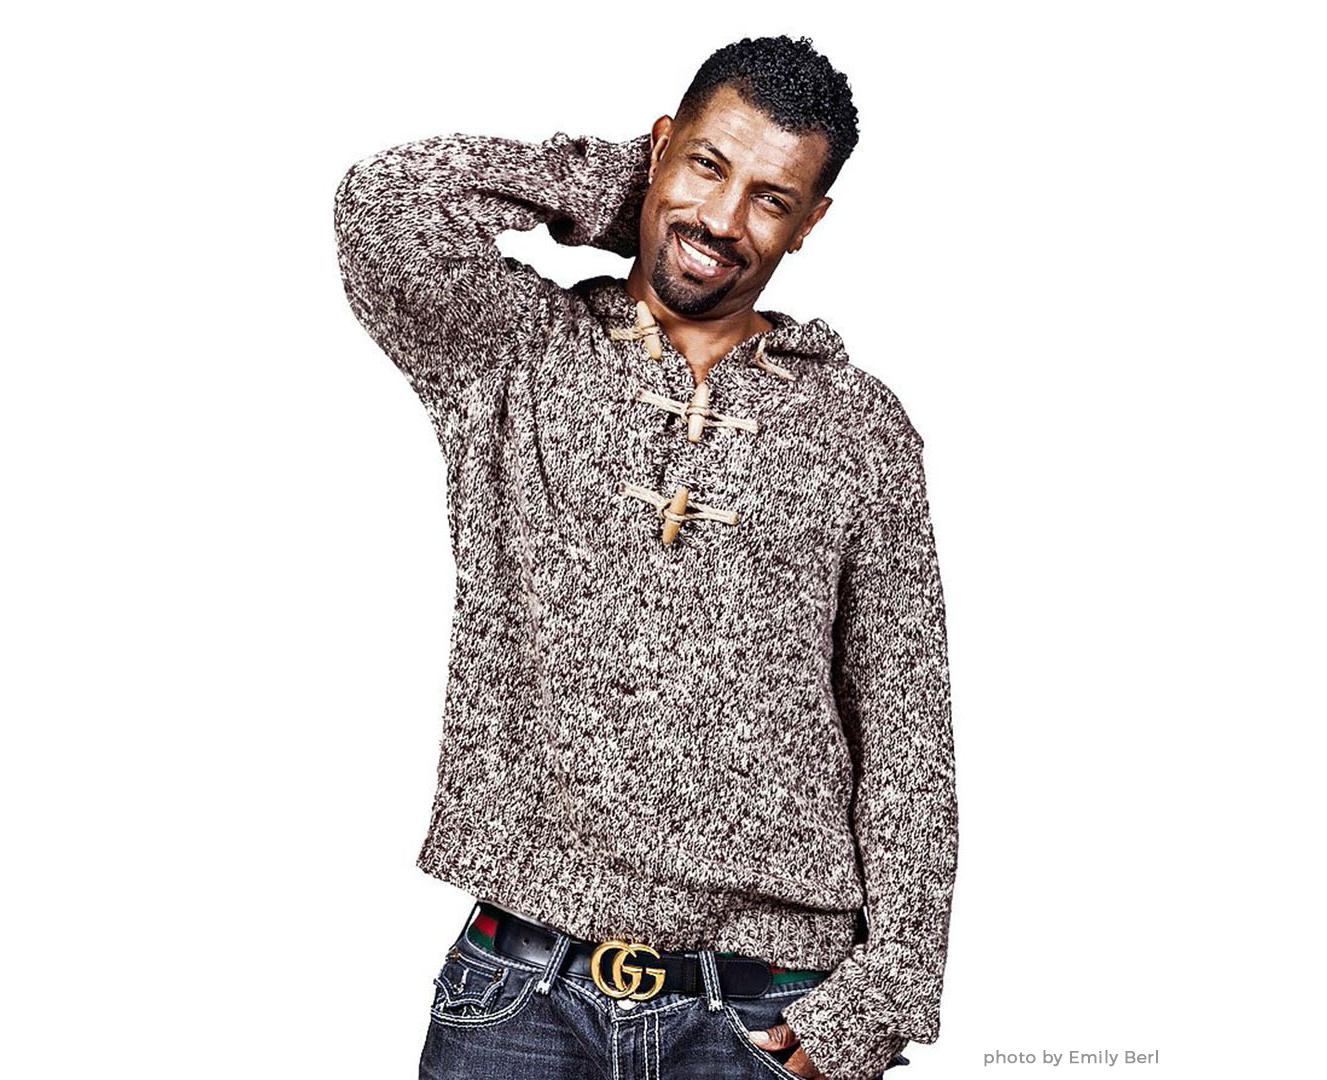 Simply Hilarious Comedy Tour 2019 to bring Deon Cole, Michael Blackson, Bruce Bruce & Red Grant to Miller High Life Theatre, September 7